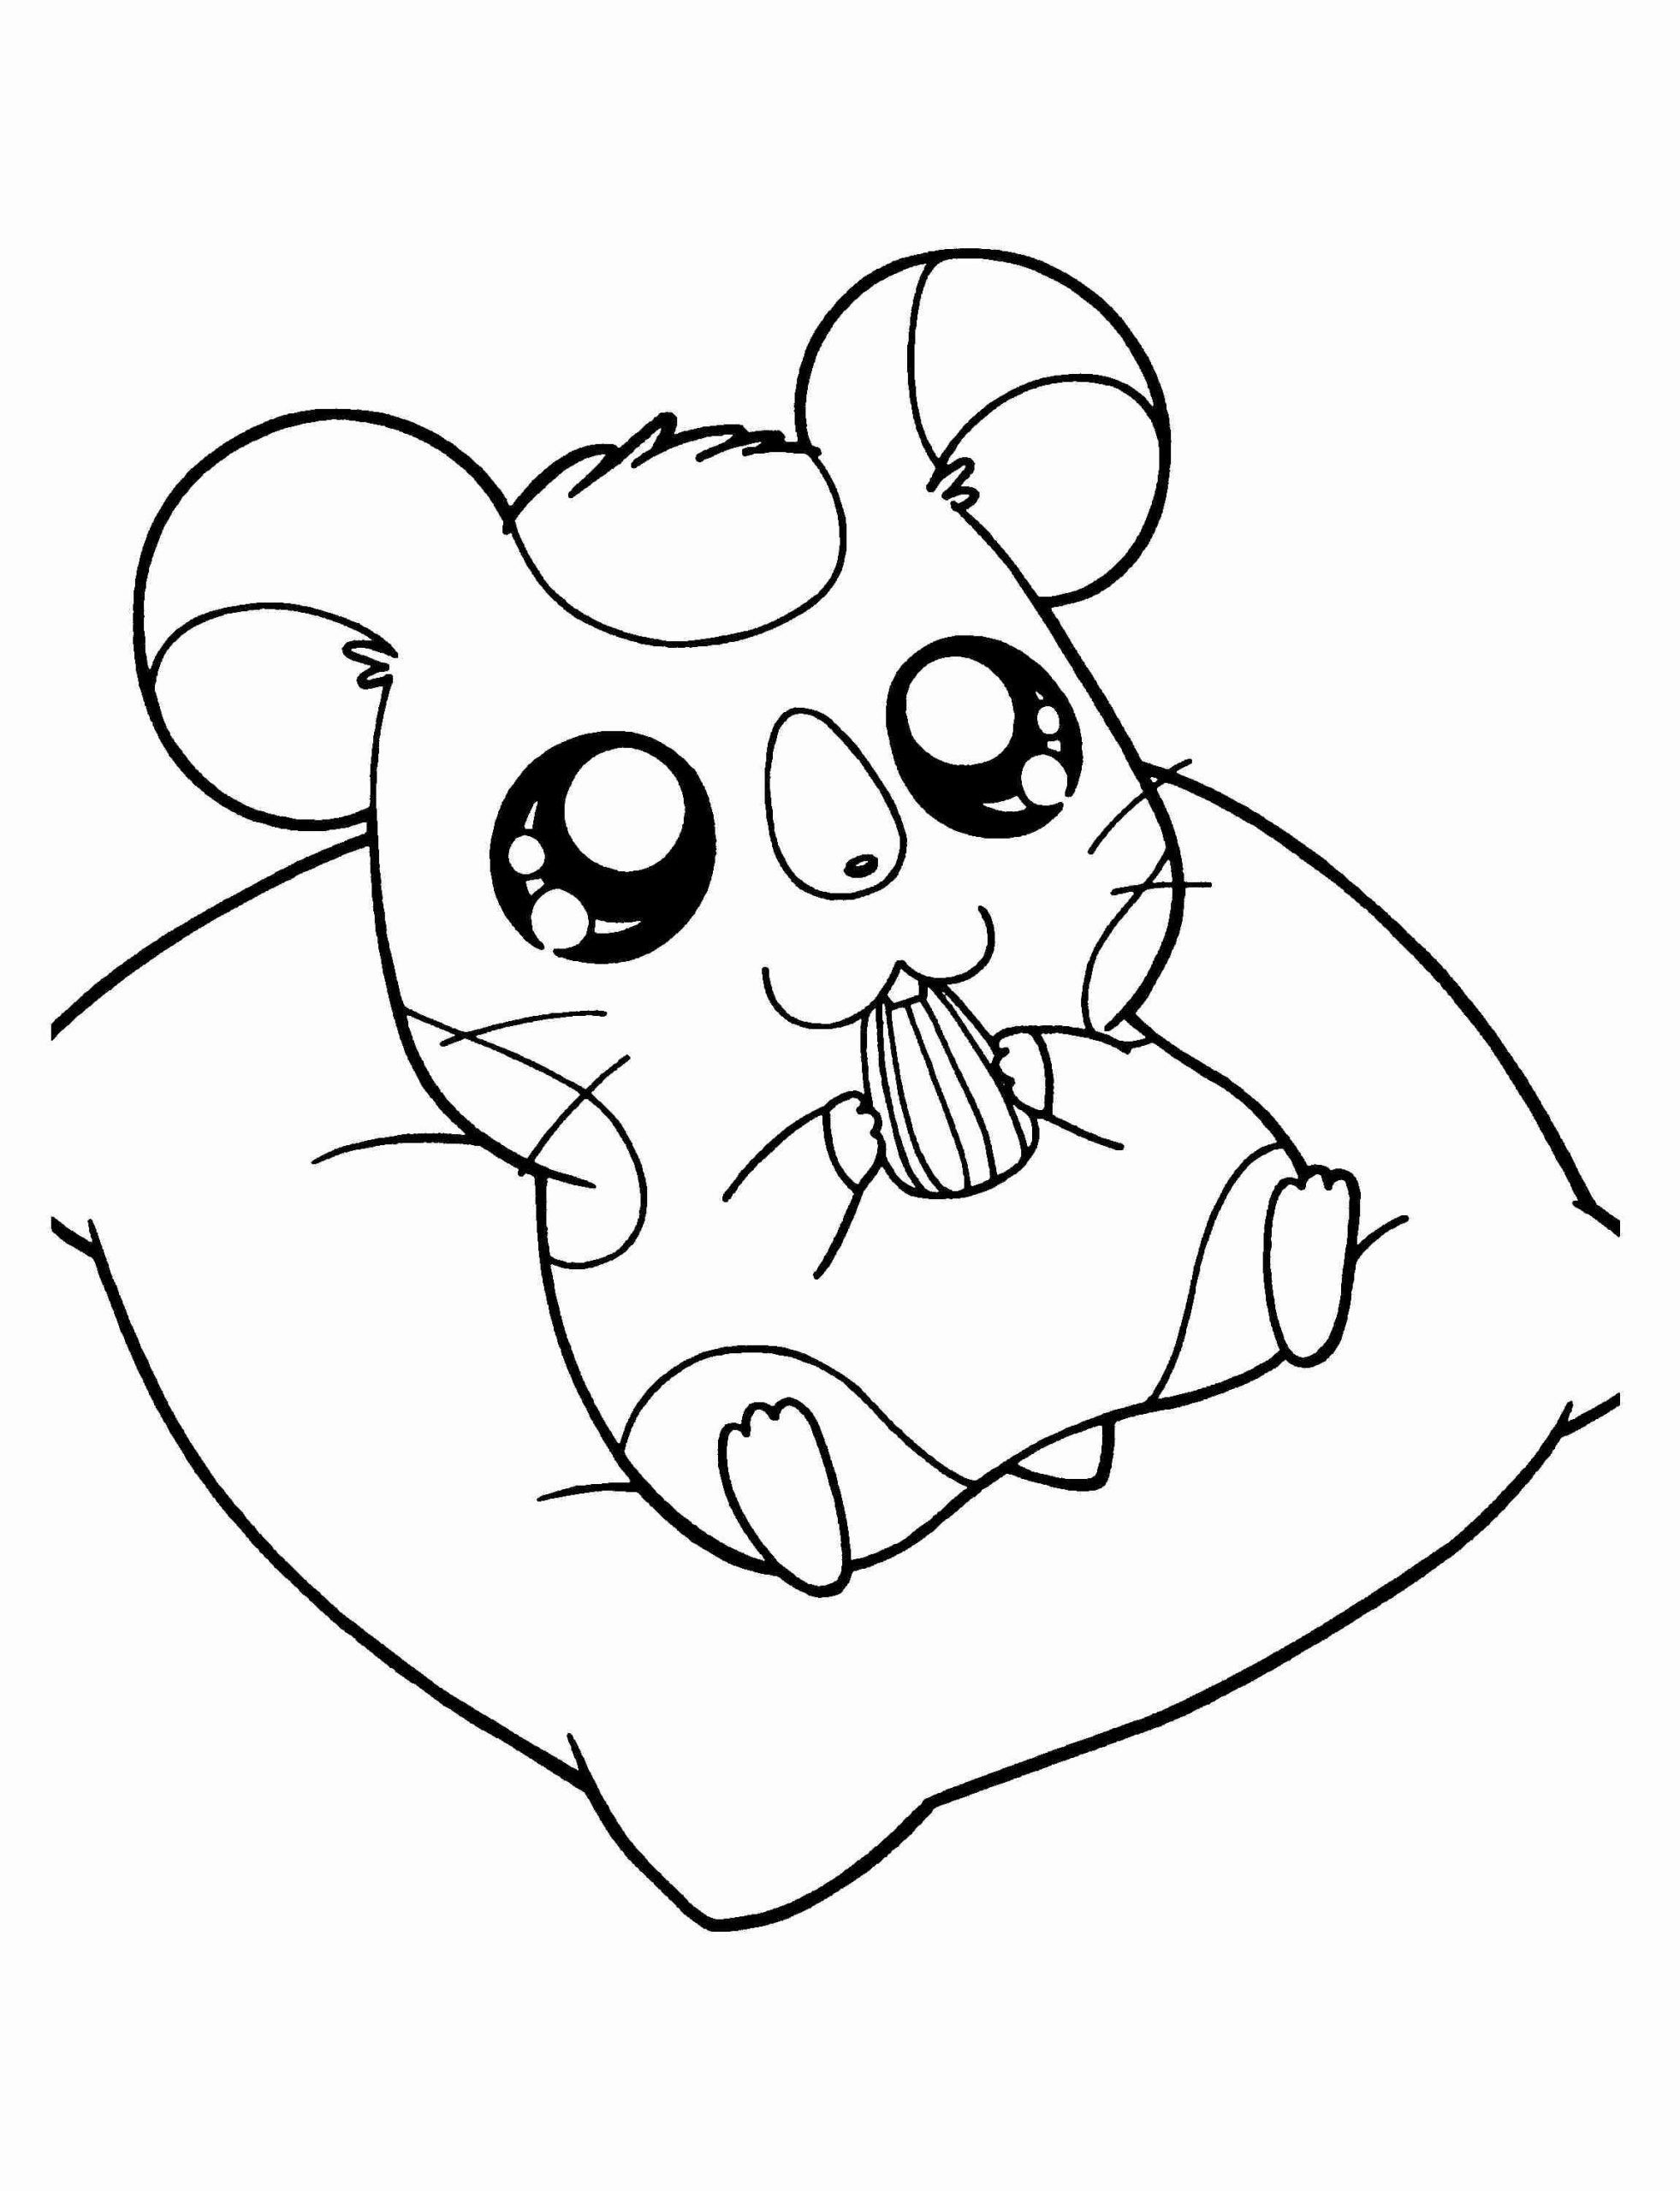 Cute Hamster Coloring Pages Hamster Coloring Pages Best Coloring Pages For Kids In 2020 Animal Coloring Pages Coloring Pages Shopkins Colouring Pages